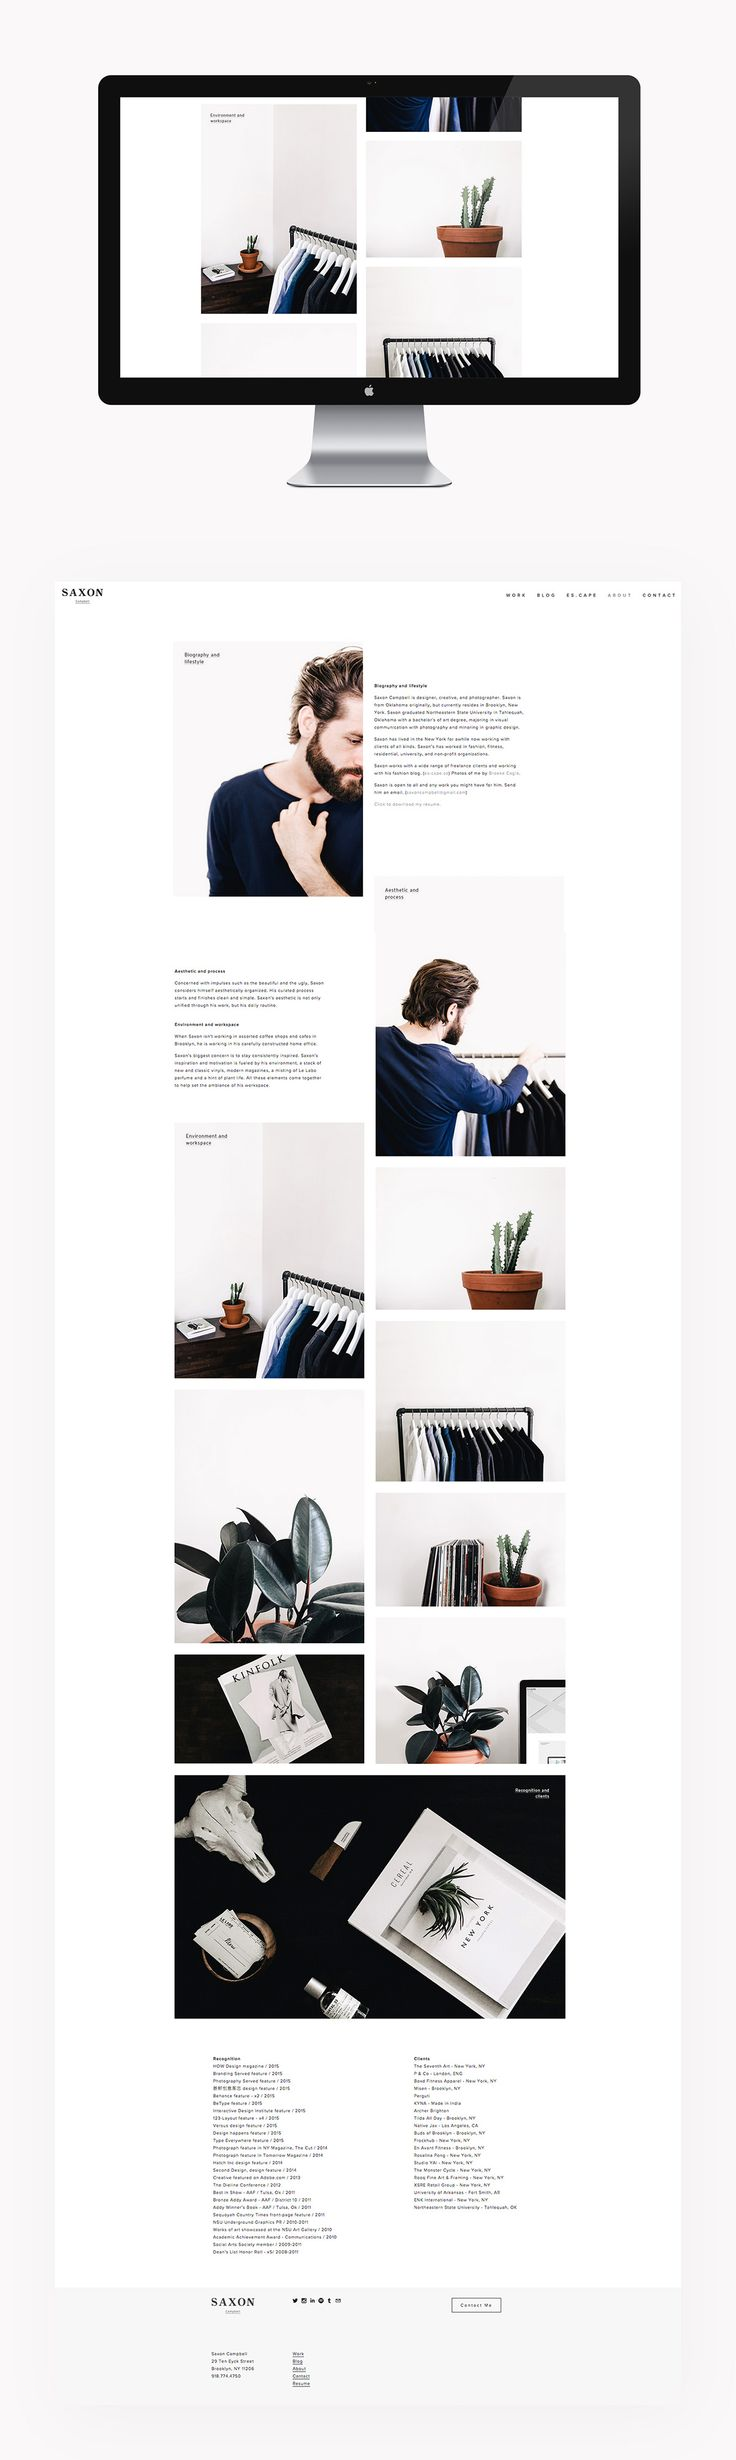 Saxon Campbell - Personal Branding on Branding Served